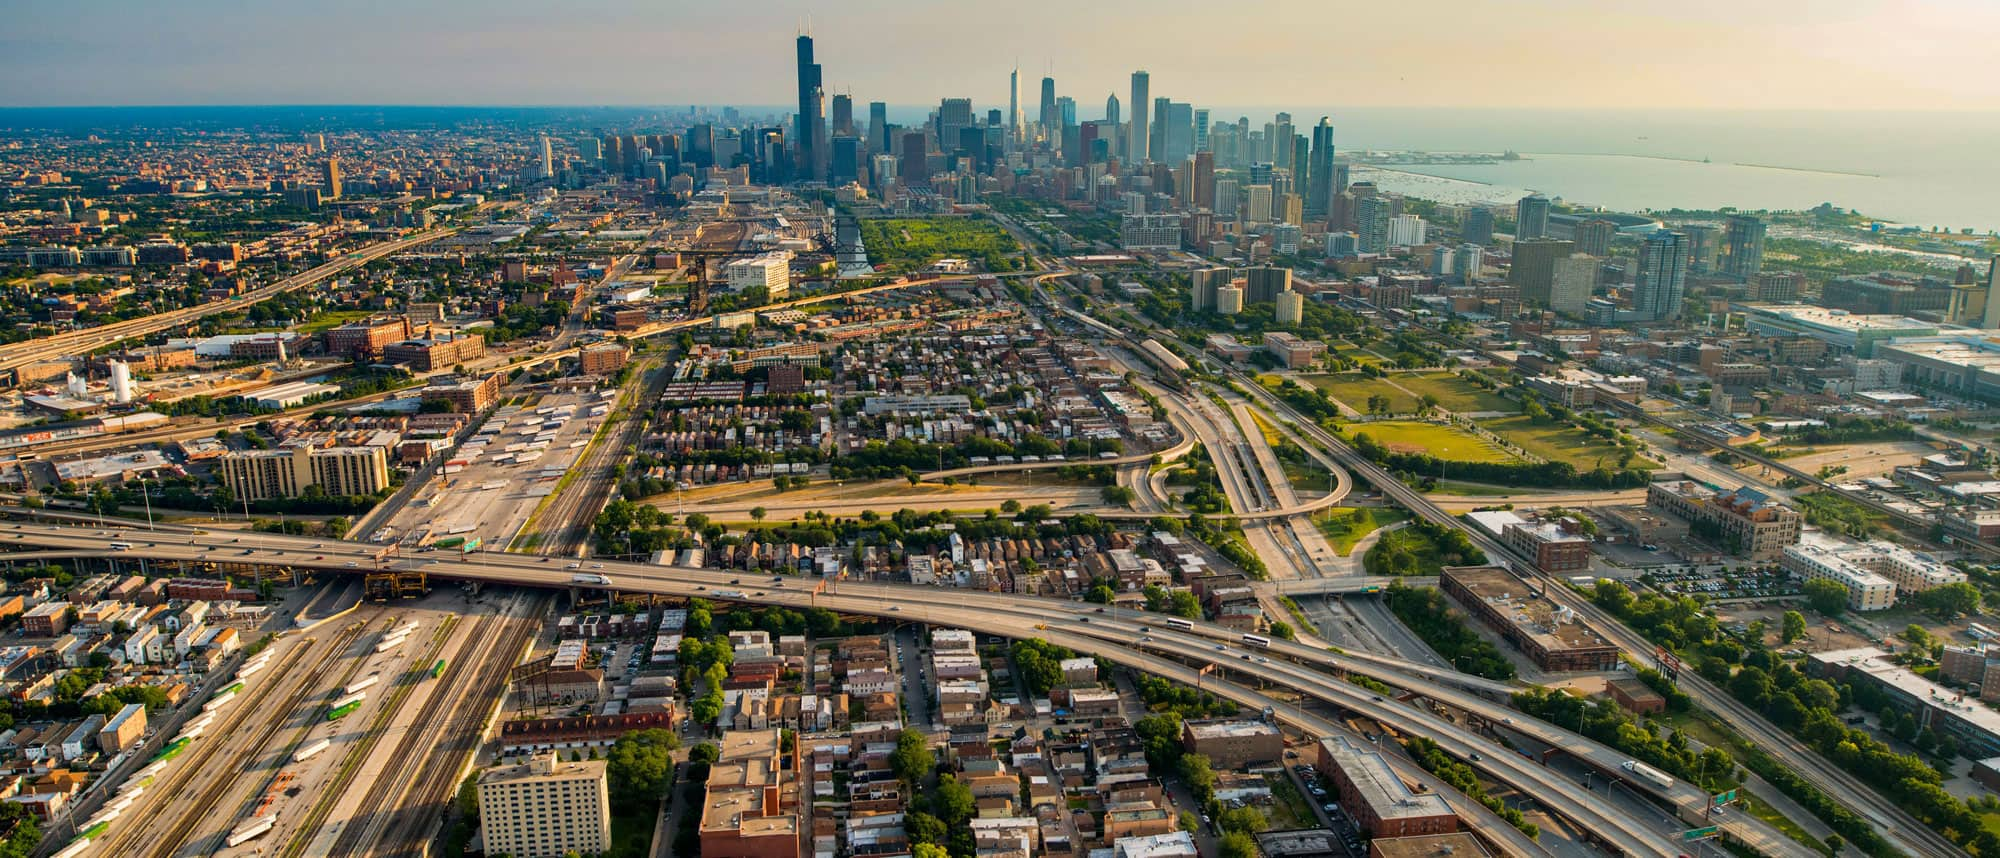 Chicago skyline and expressways